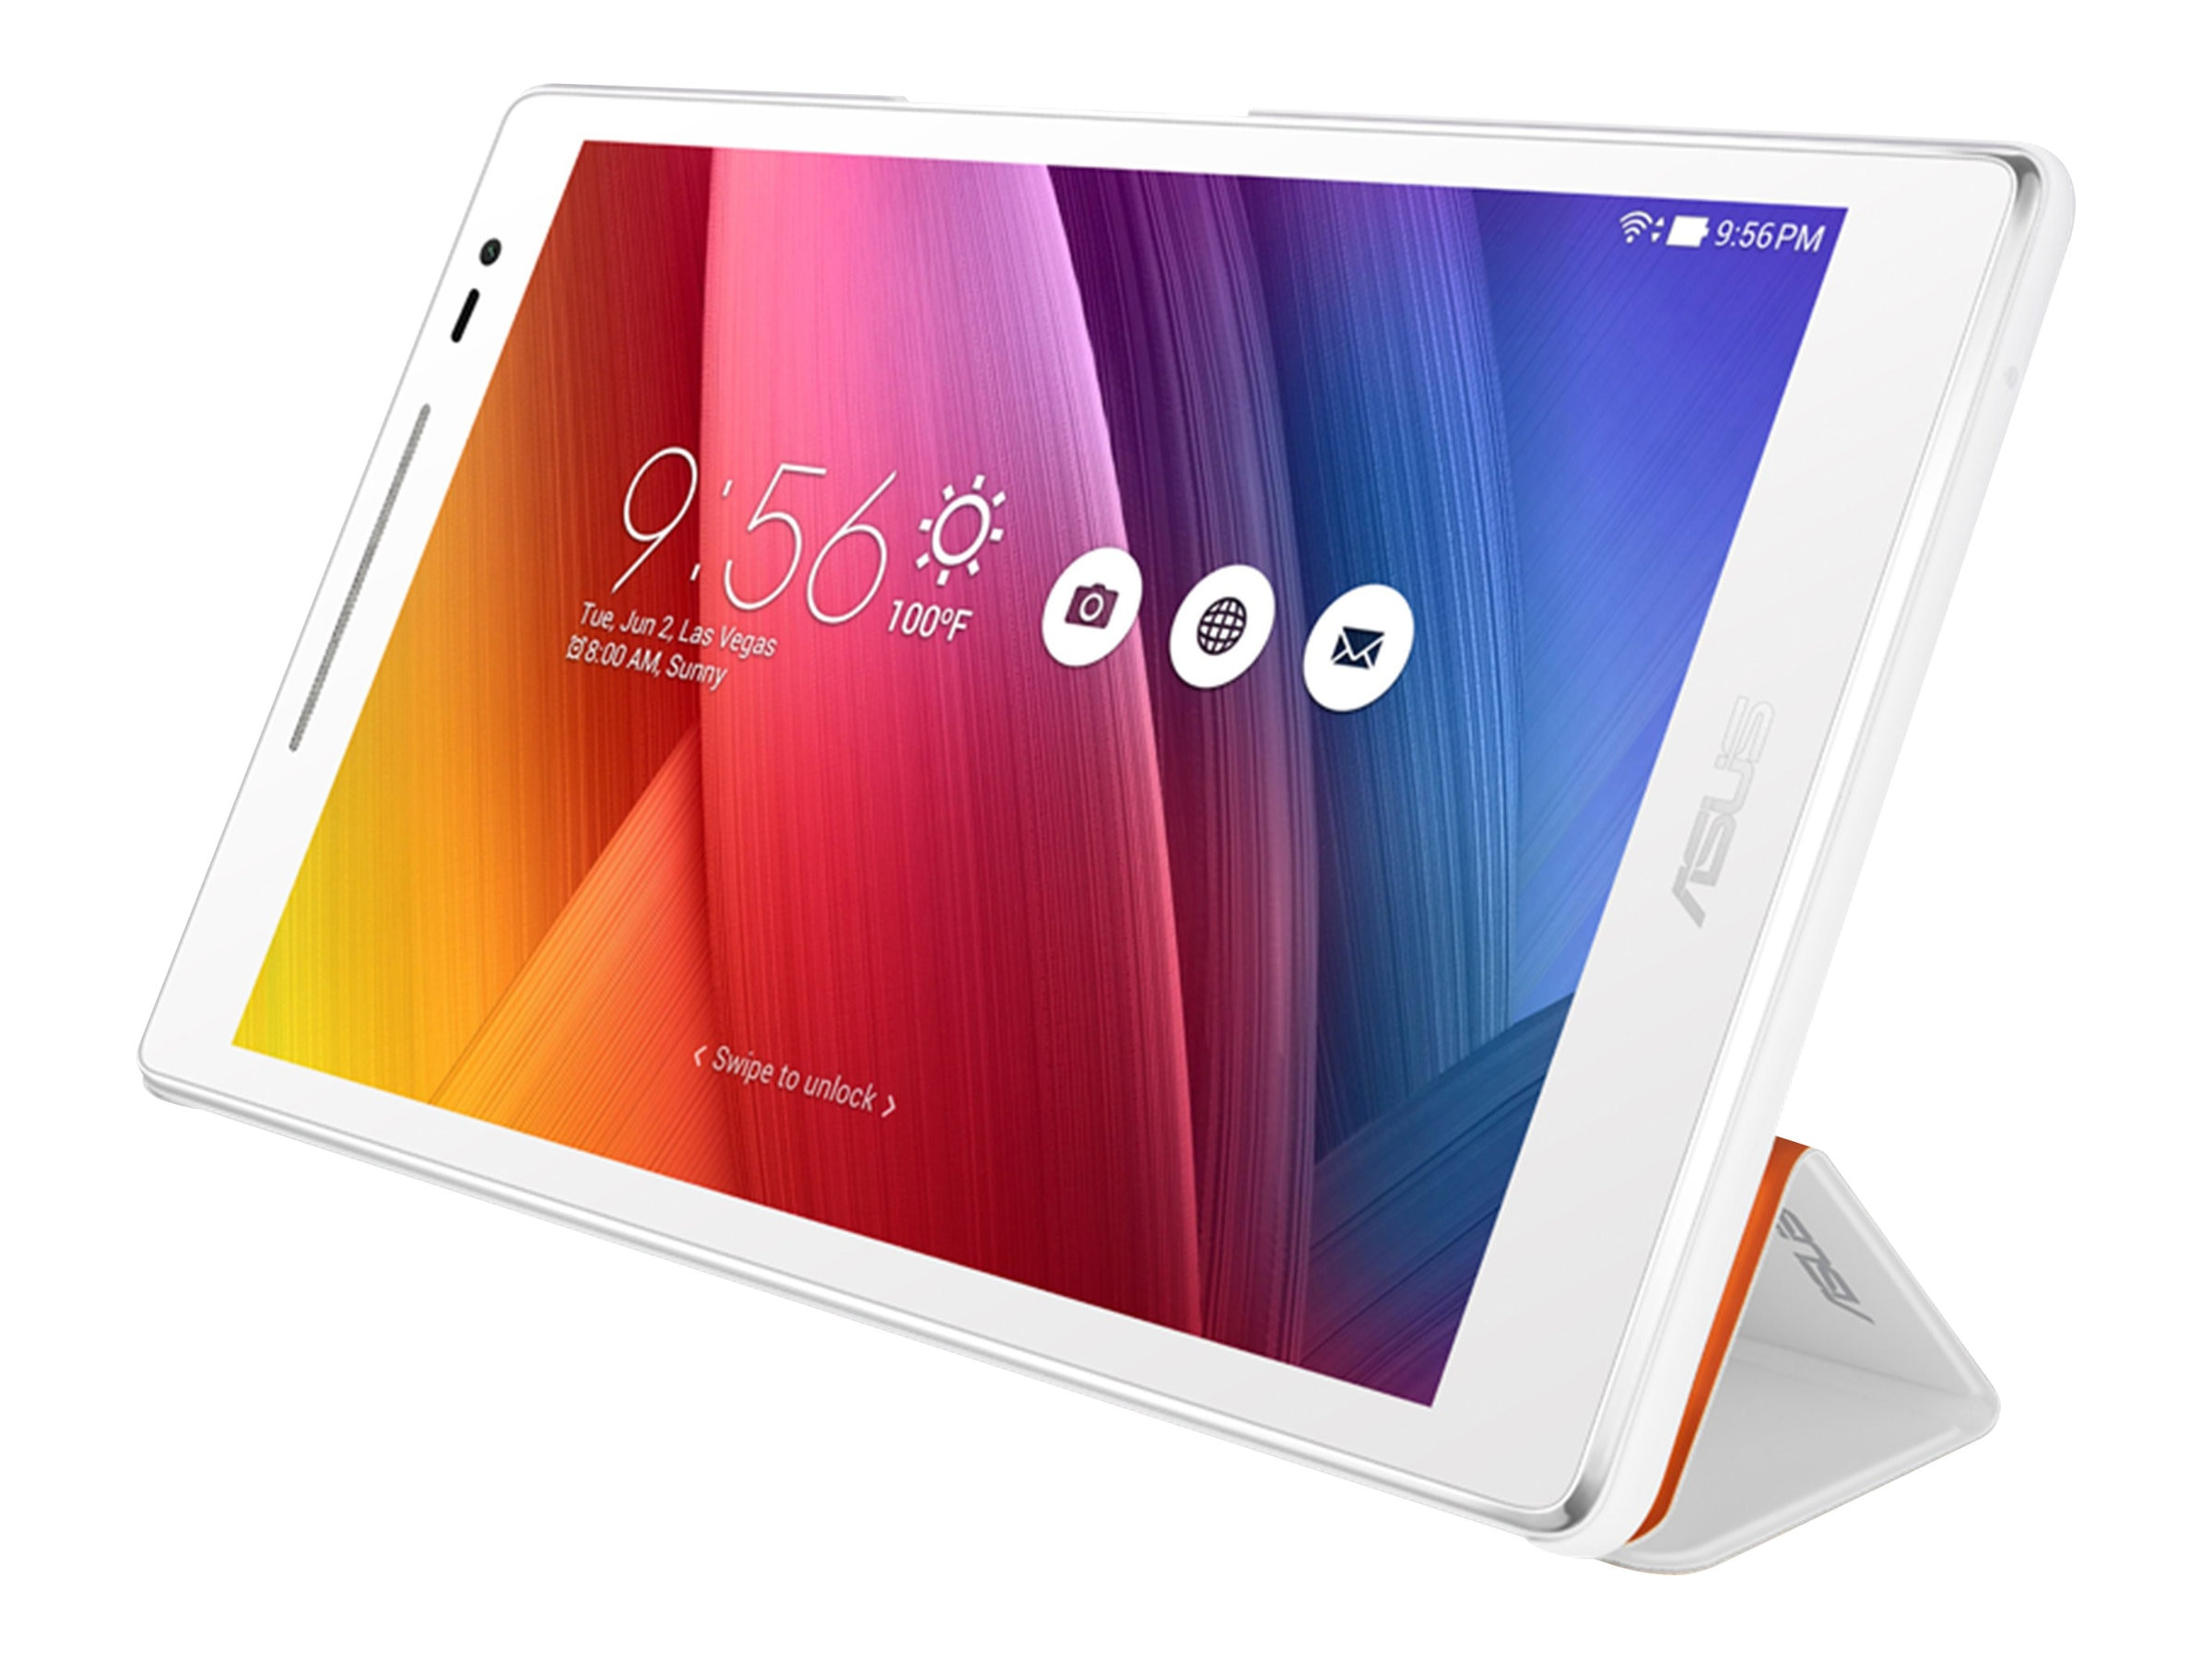 Asus Tricover for Zenpad 8.0, White